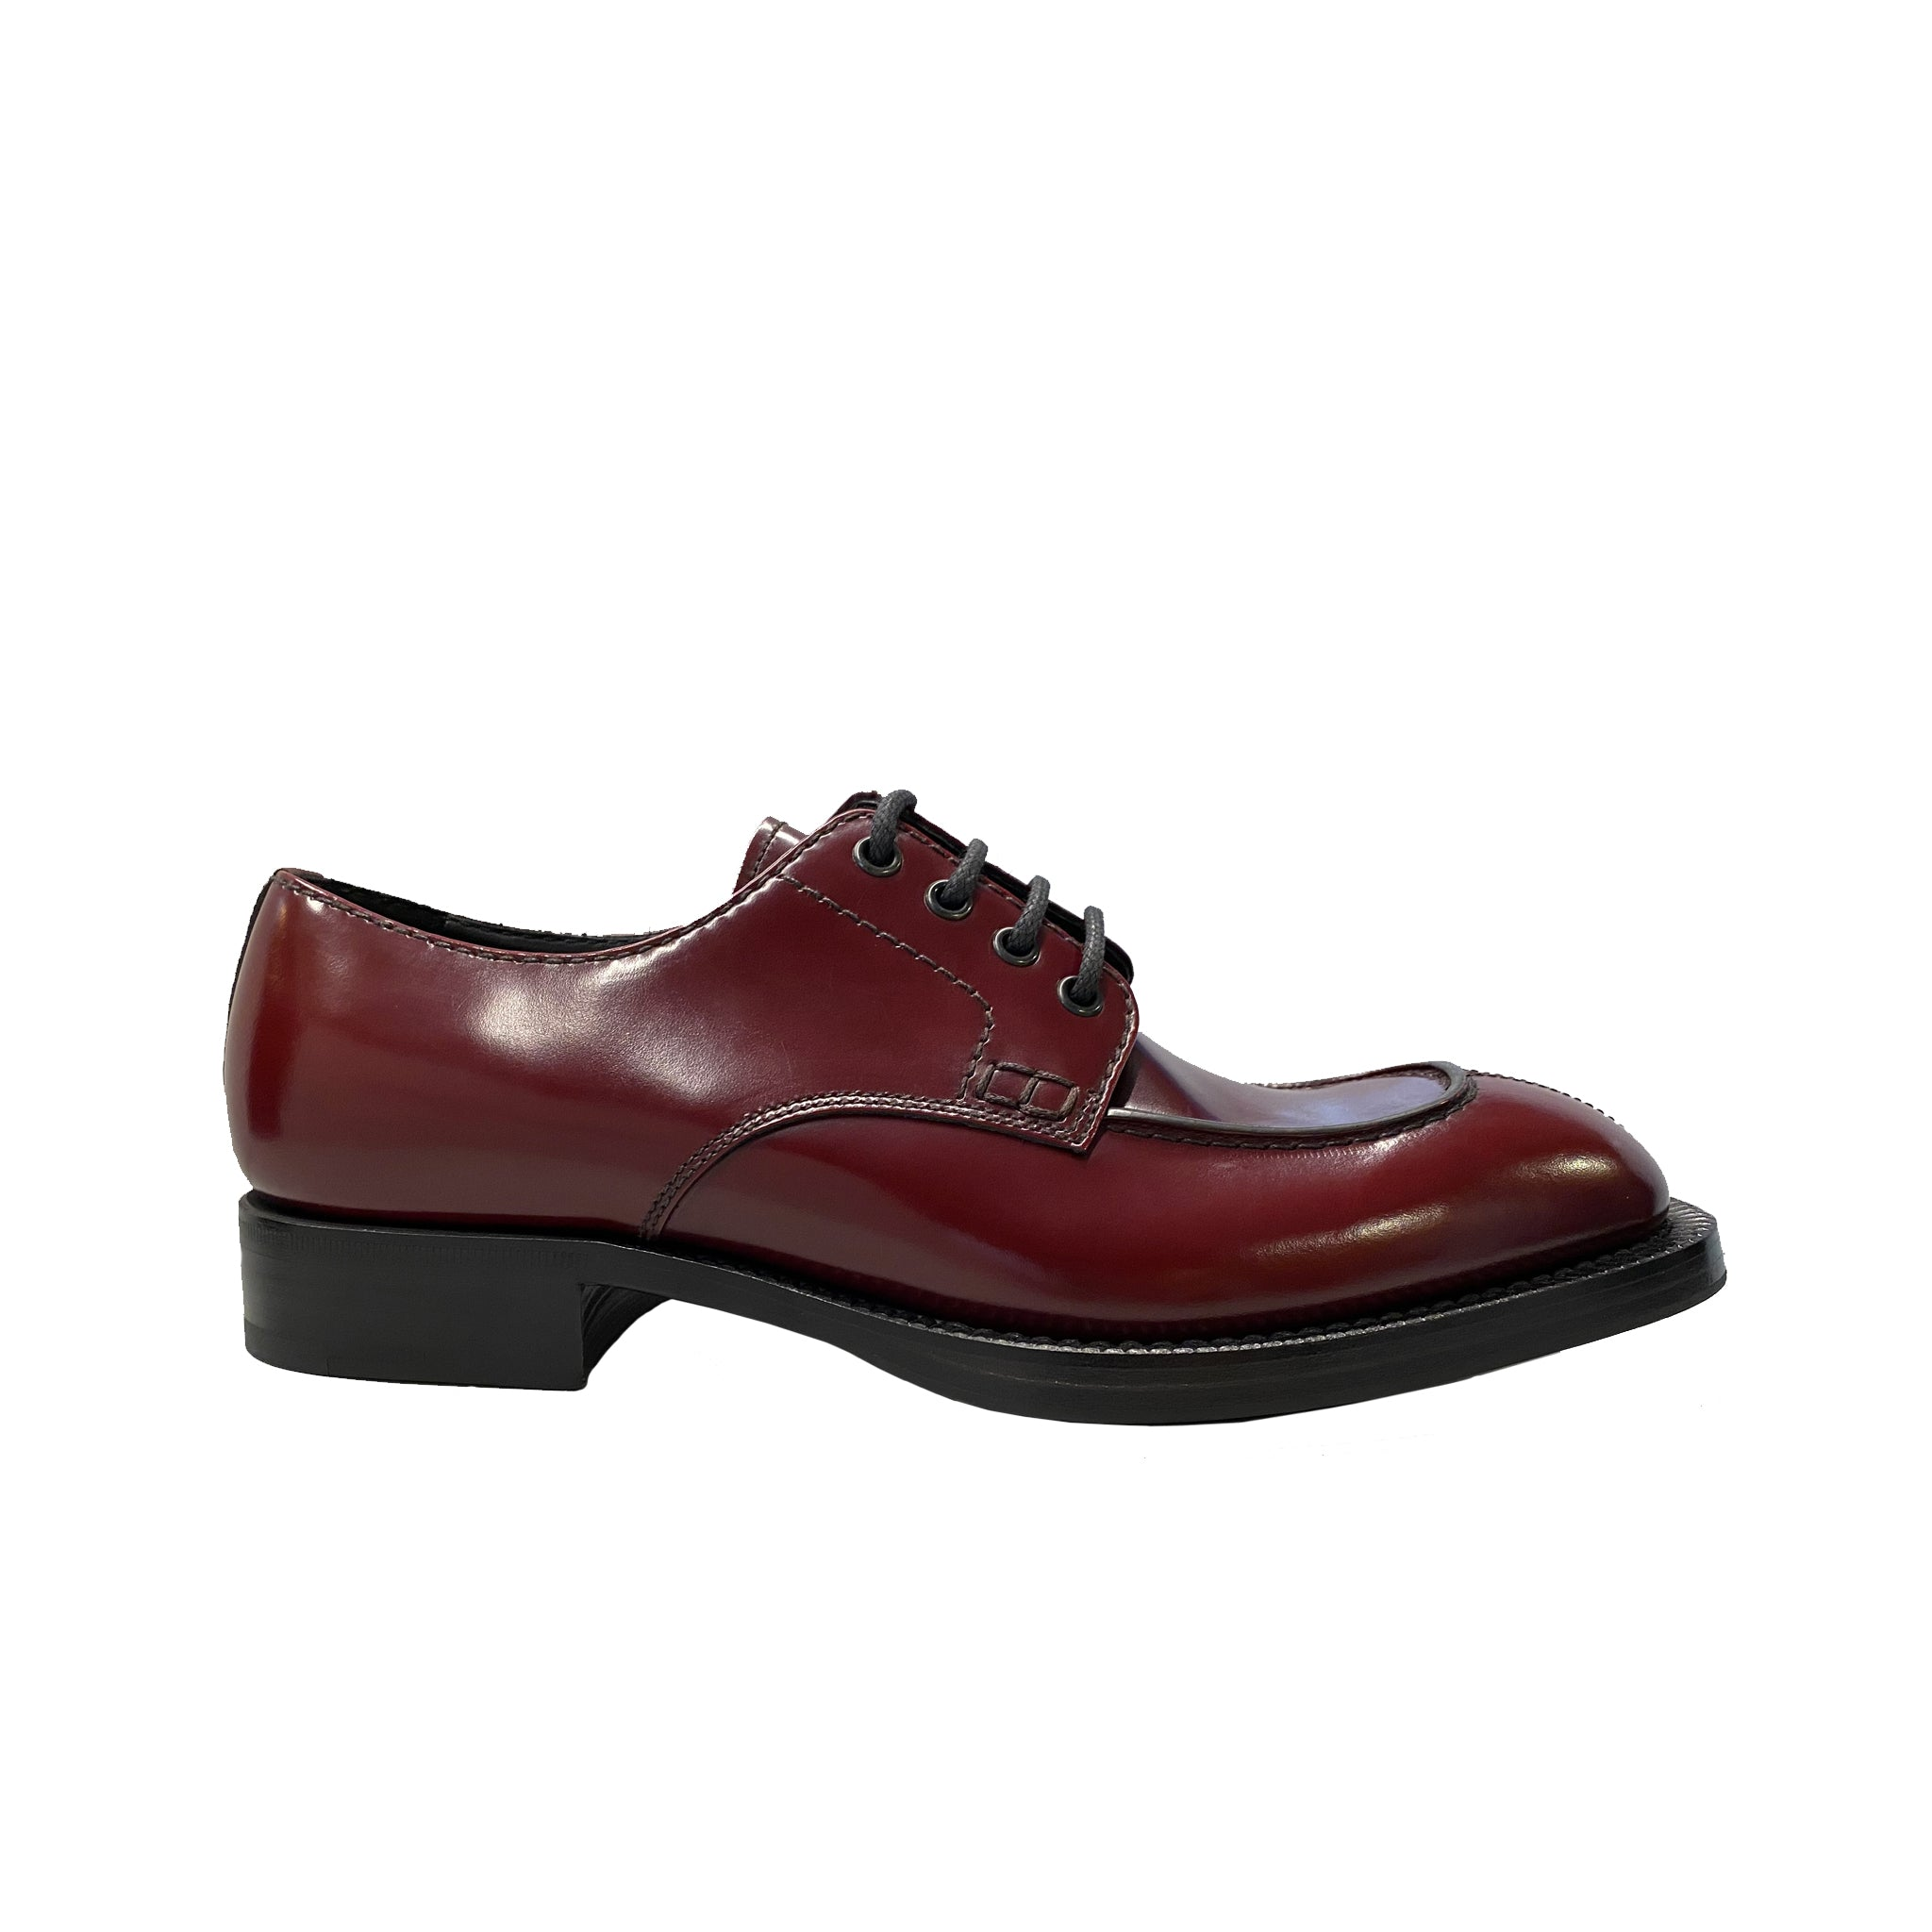 Prada Leather Derby Shoes